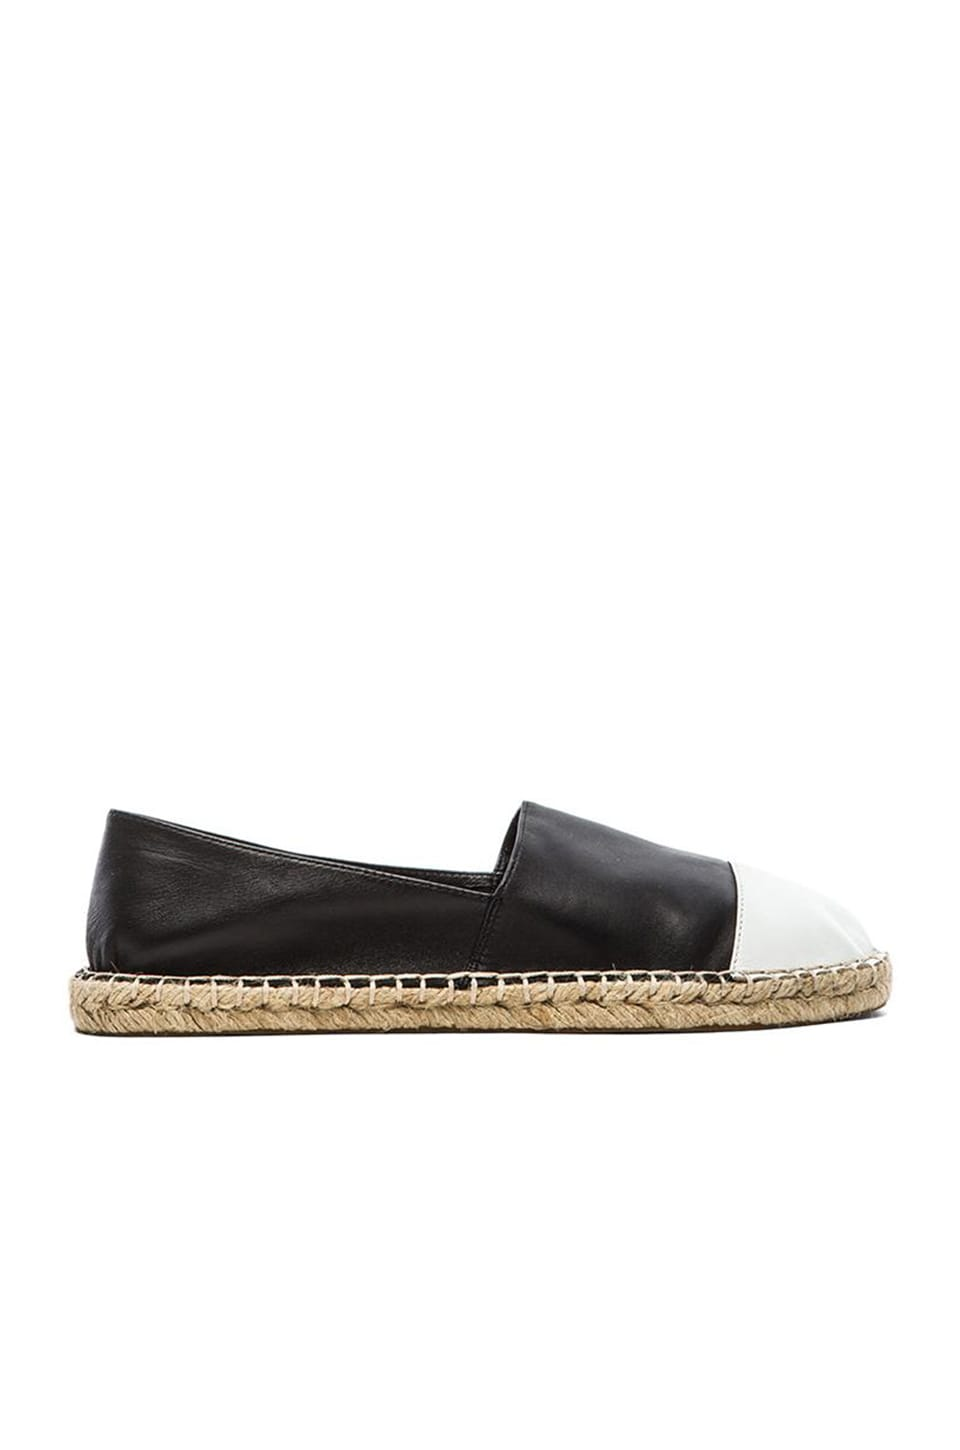 Rebecca Minkoff Gavin Flat in Black & White